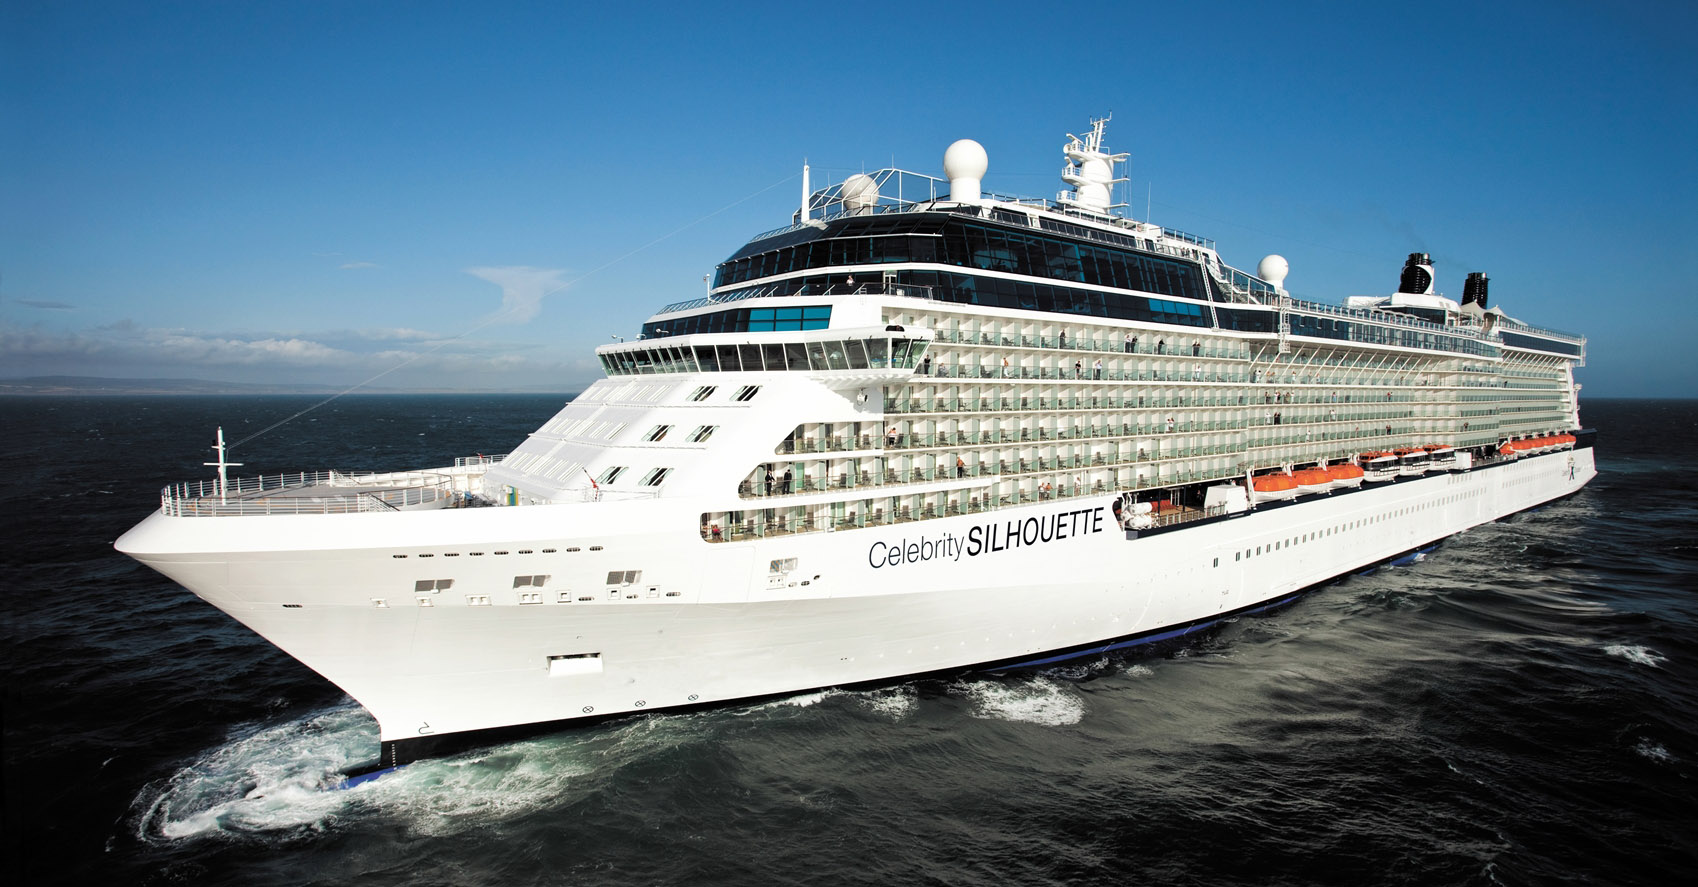 Celebrity Silhouette To Replace Celebrity Eclipse Cruise Ship In - Cruise ship deals 2018